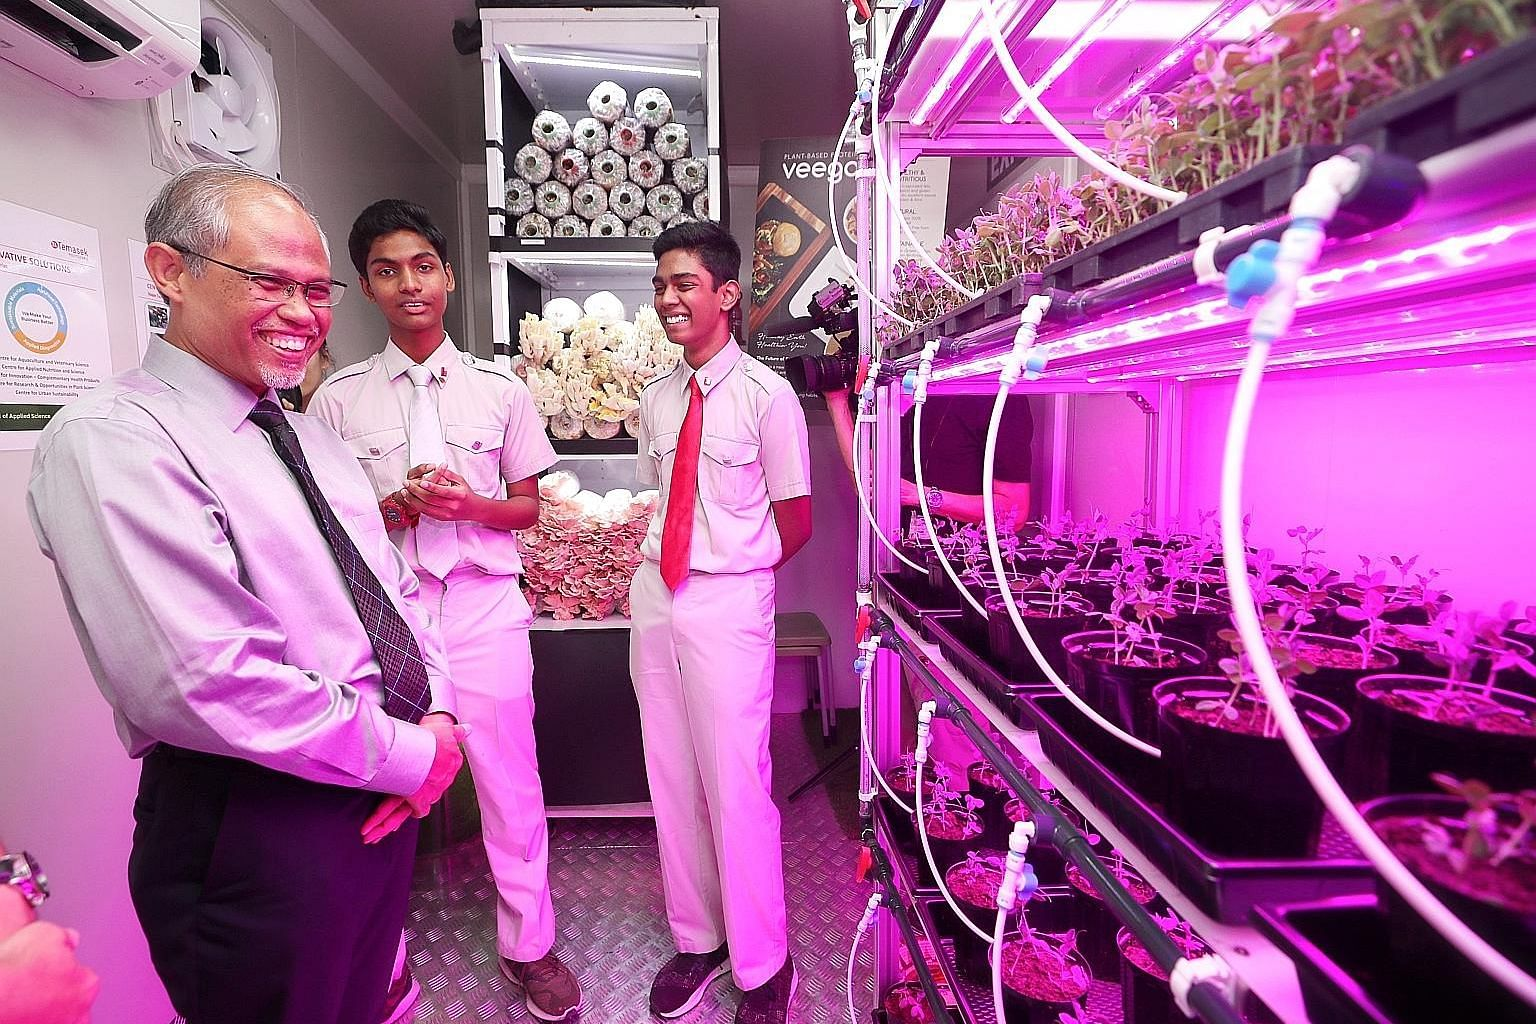 Minister for the Environment and Water Resources Masagos Zulkifli touring the facility with National Junior College students Ahsan Husain Ariff Muhammed (centre) and Shahul Hameed yesterday.